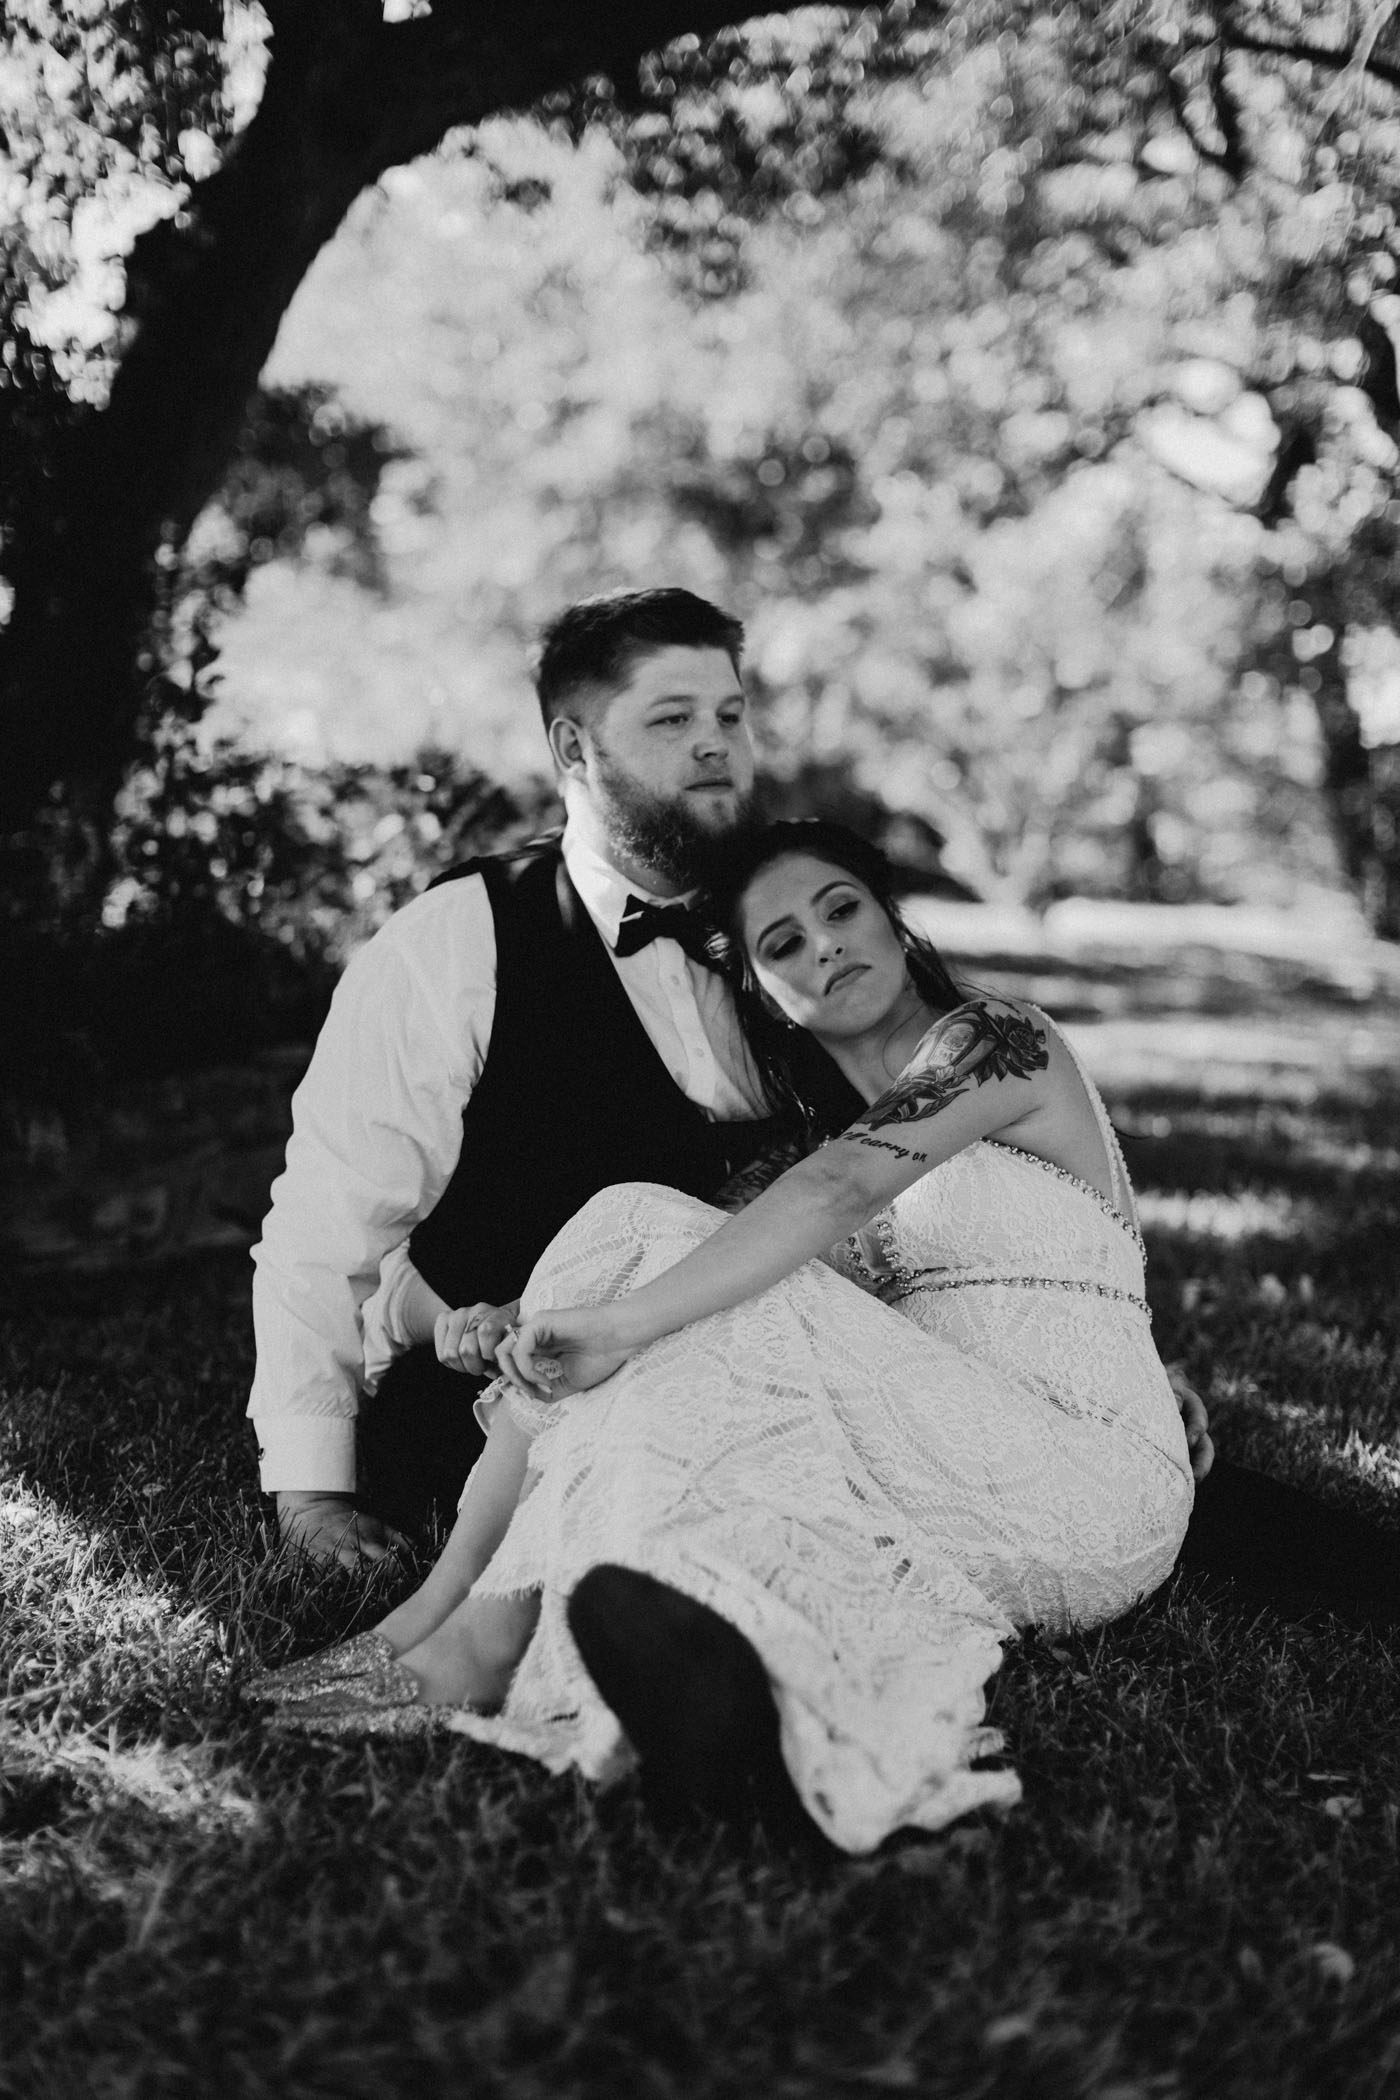 Bride and groom sitting in the grass under a tree for a romantic photo